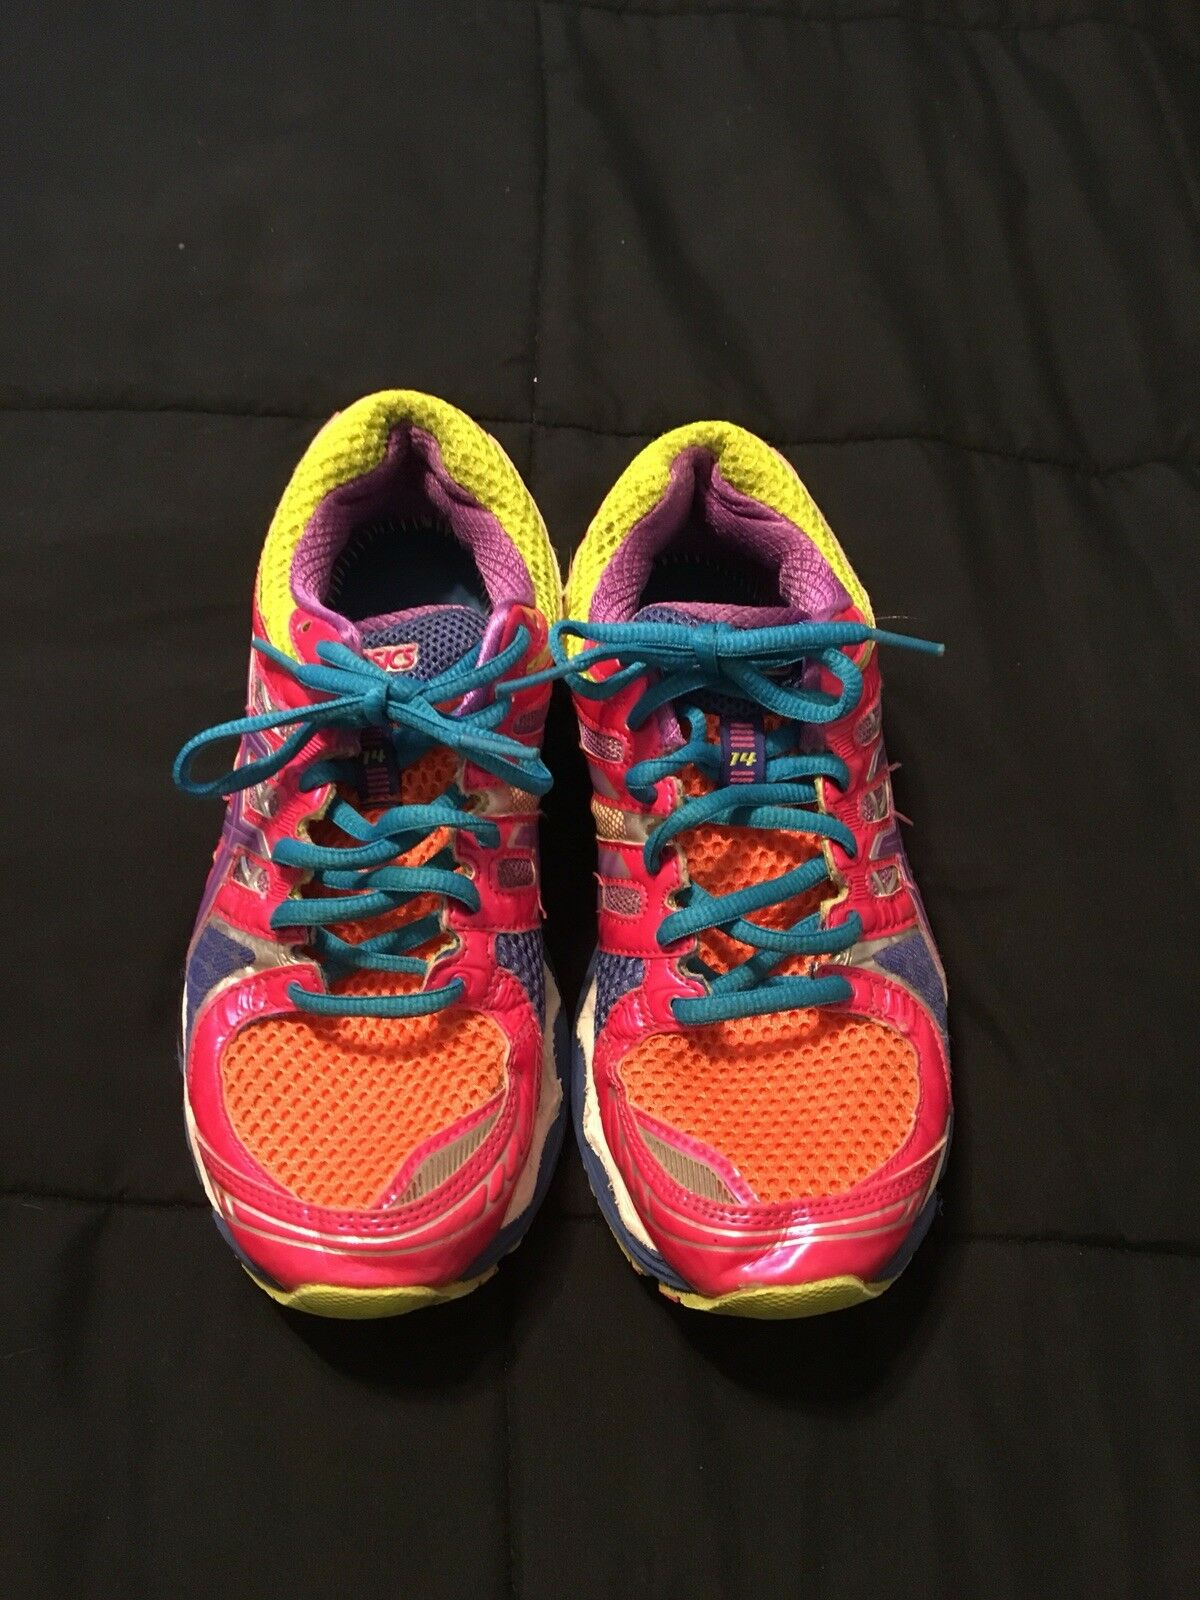 Asic Gel Nimbus 14 size 7 The latest discount shoes for men and women